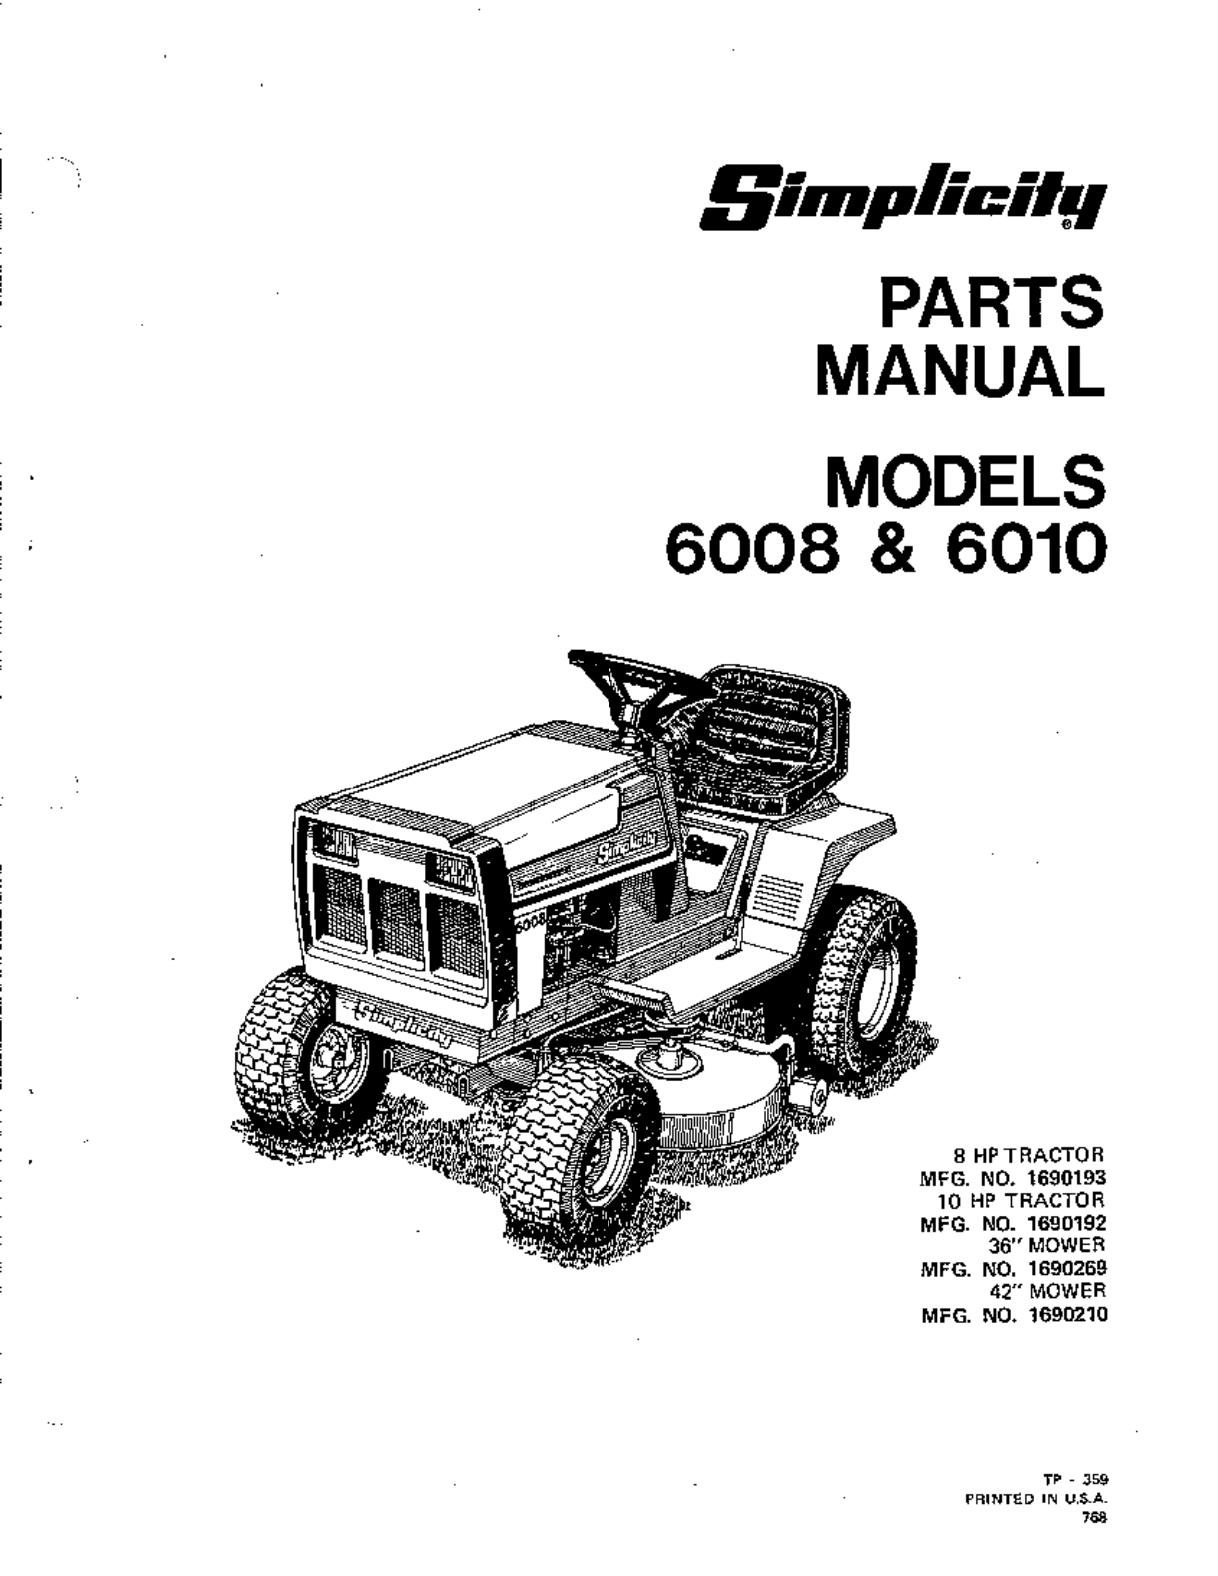 Mower Parts Diagrams Simplicity 6010 Belt Diagram Page 2 List For Model 3394704 Mtdparts Ridingmower Lawn User Guide Manualsonline Com